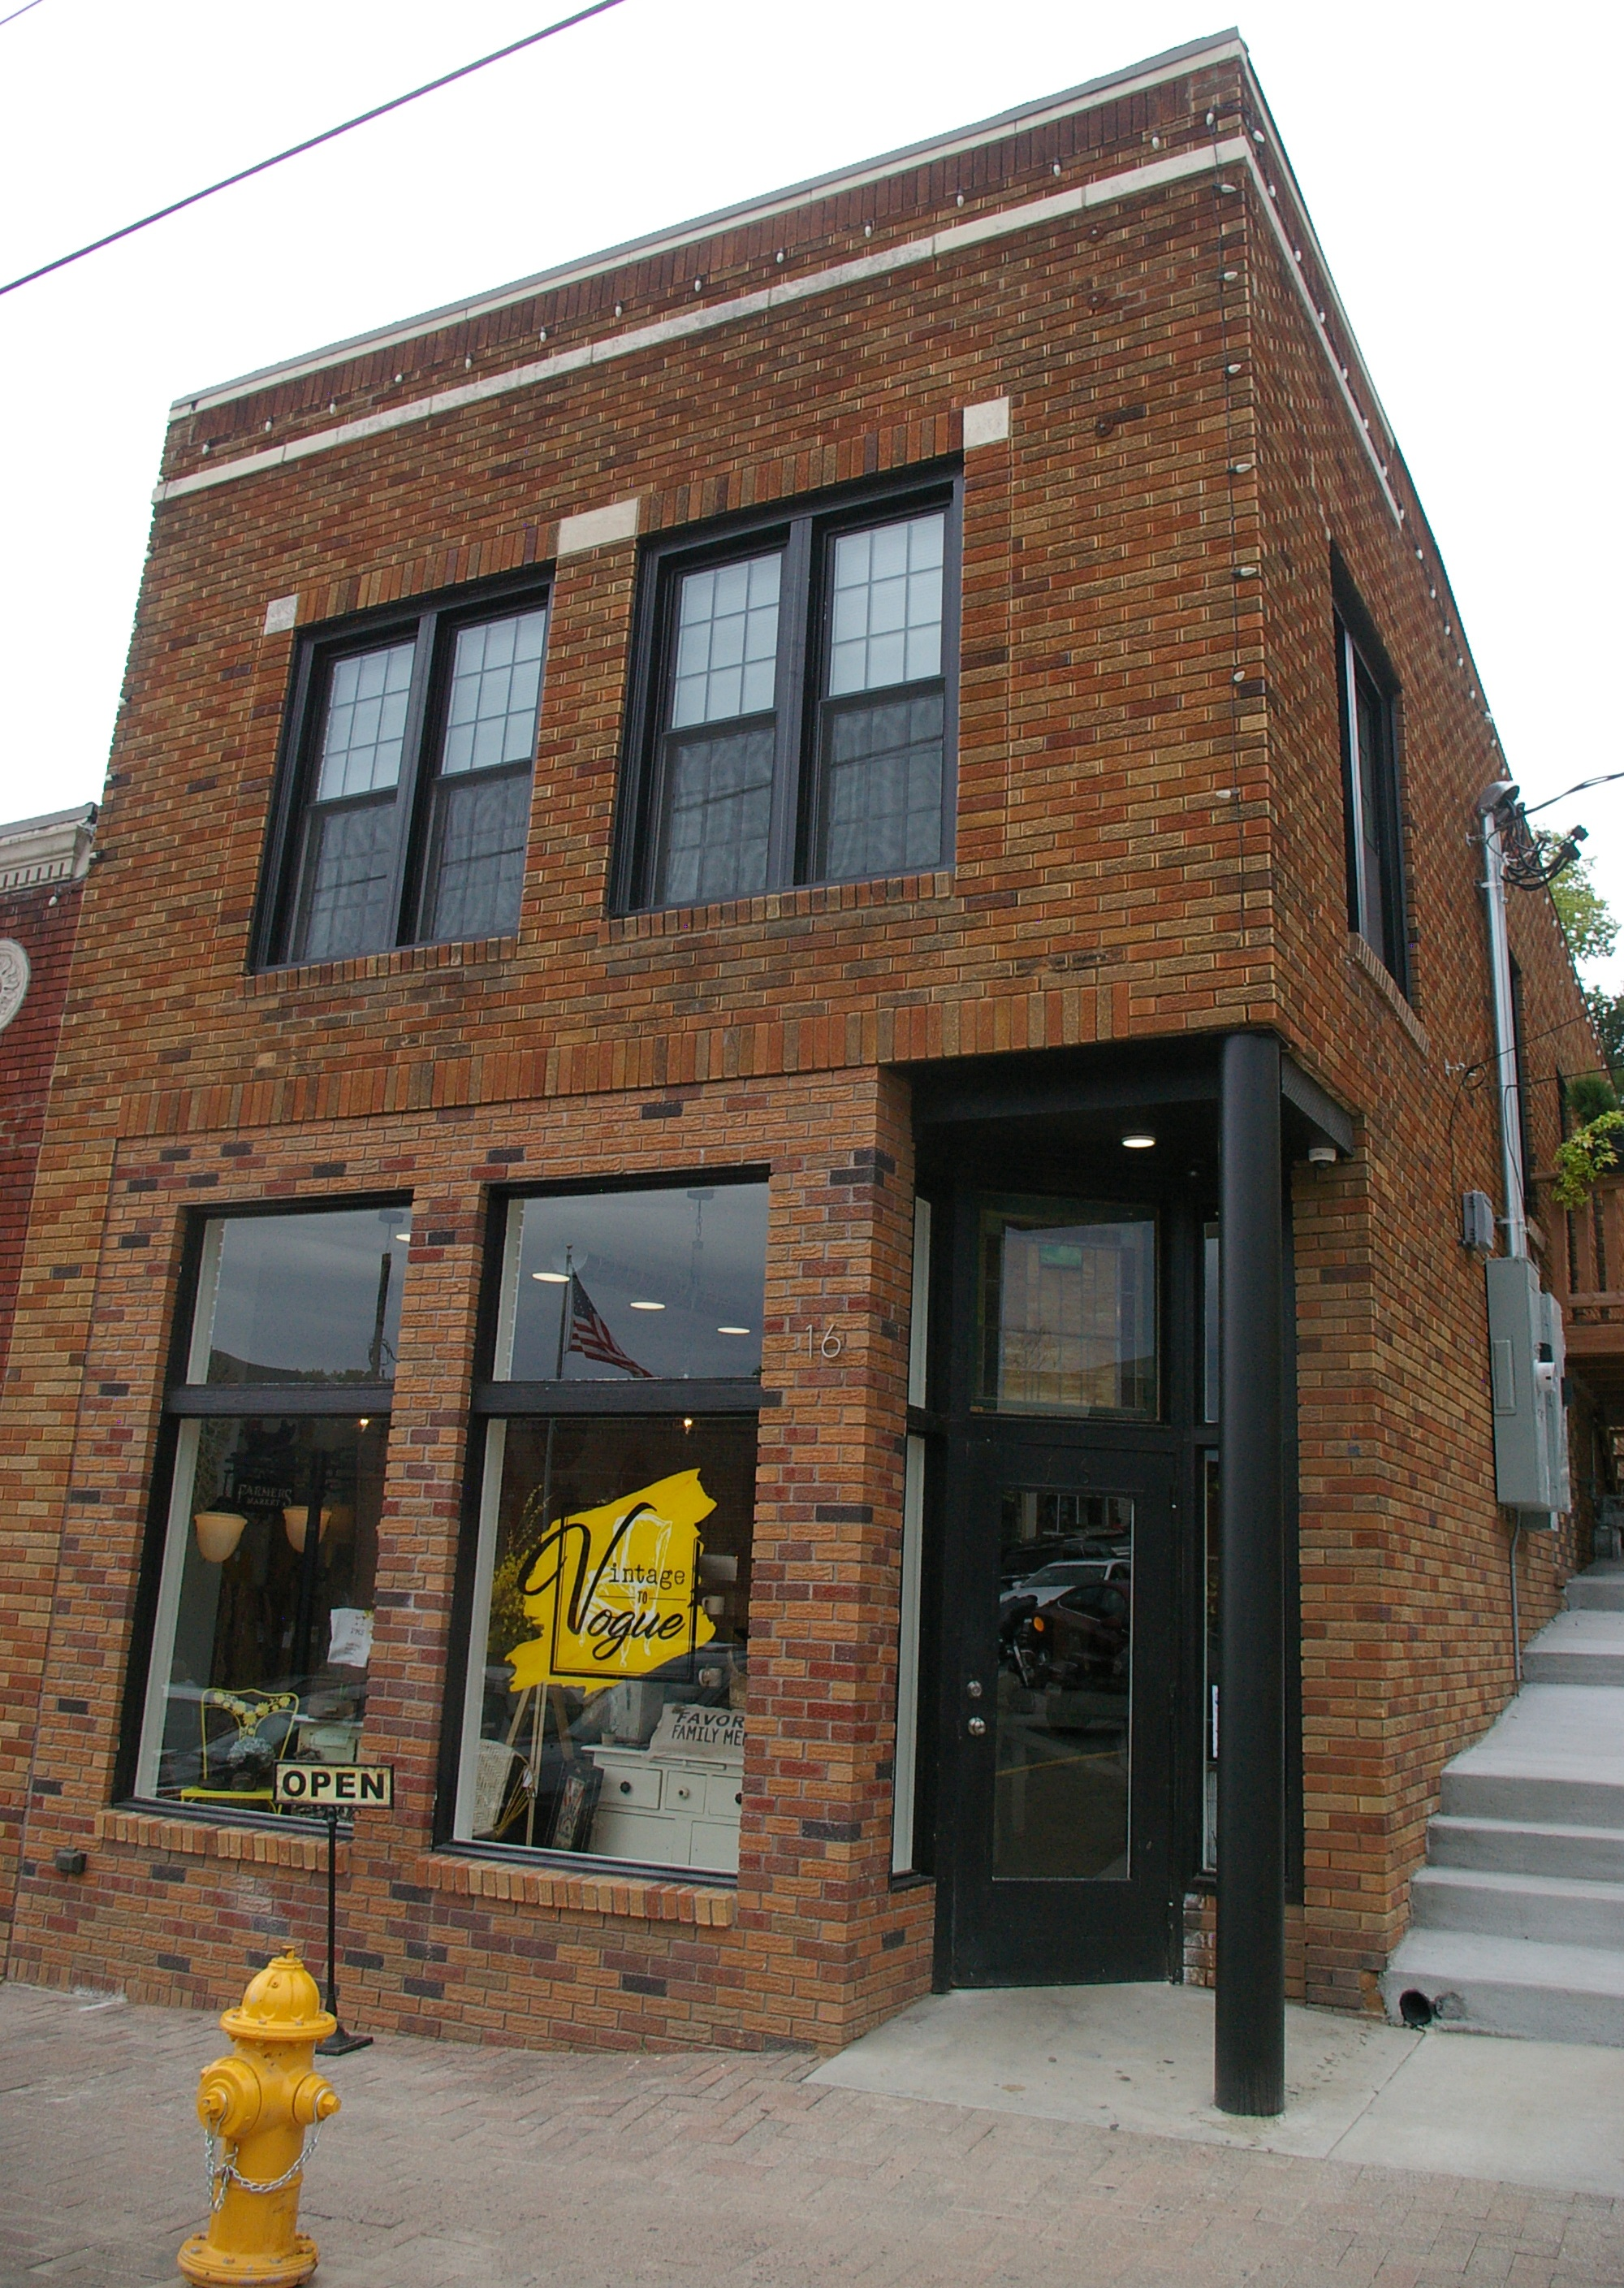 JEANETTE FAUBION/Citizen photos The Craic and Vintage to Vogue have opened in the recently renovated Finders Keepers Antique Store location on Main Street in Parkville.